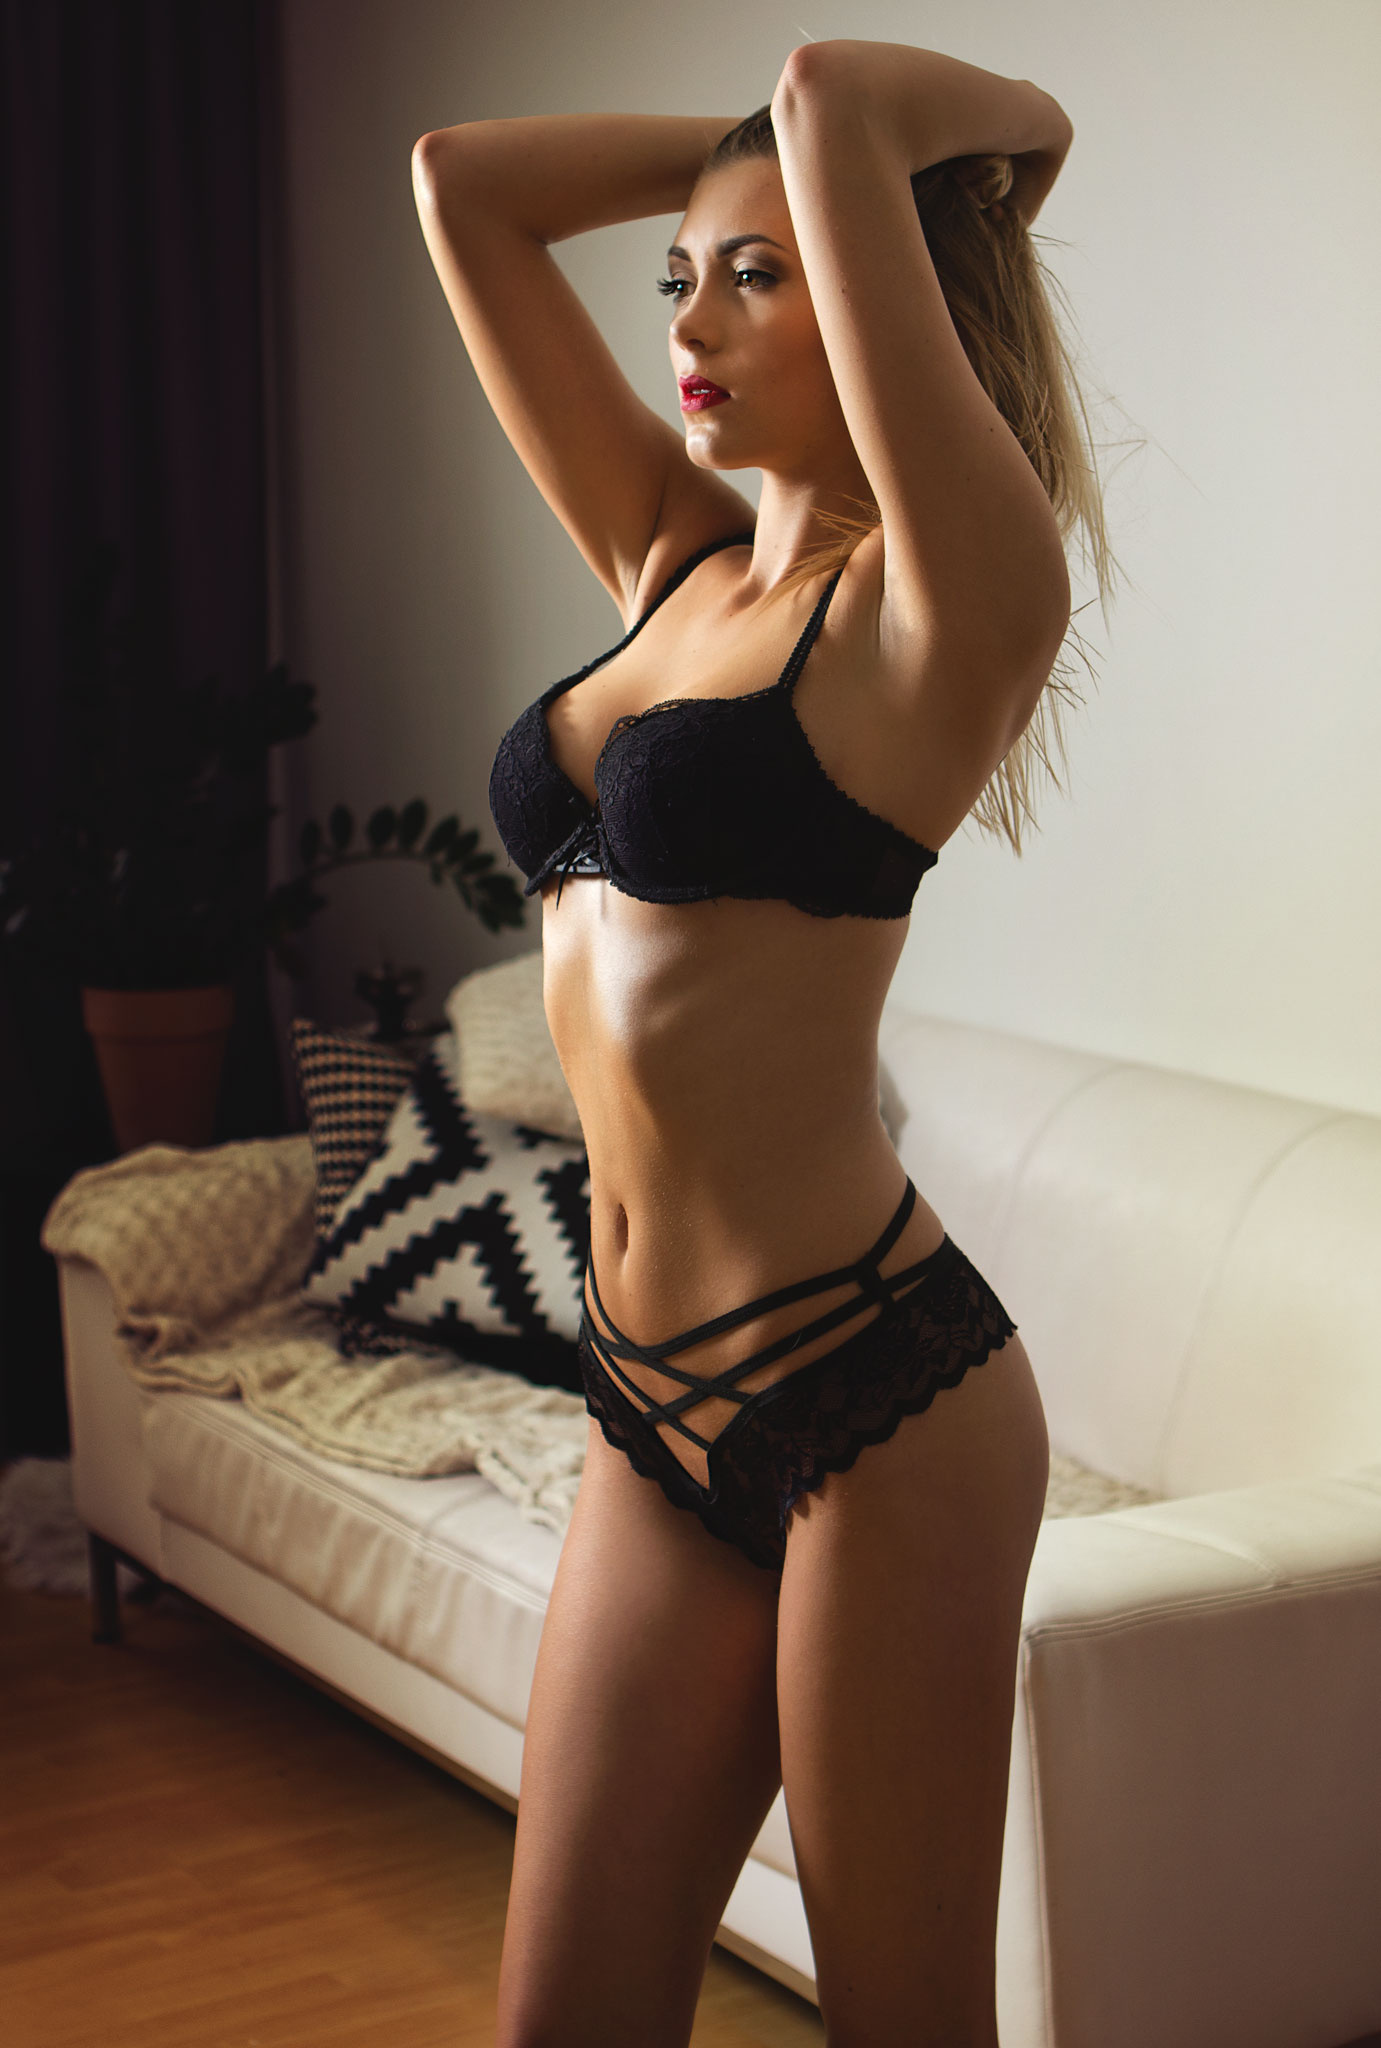 model girl in black lingerie room